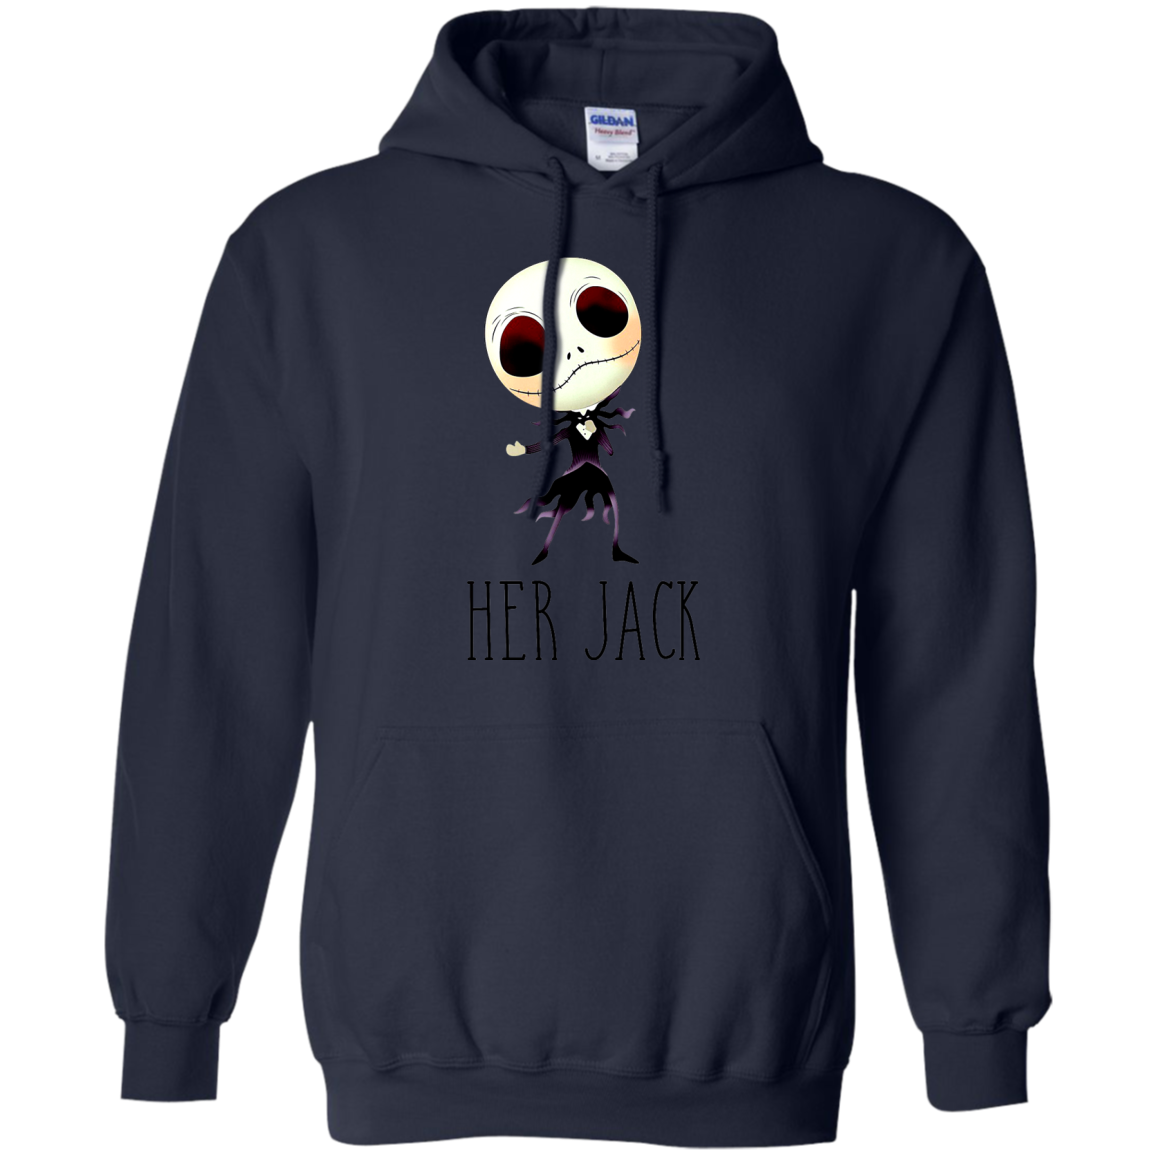 Her Jack Skellington Nightmare Before Christmas T shirts And Hoodies